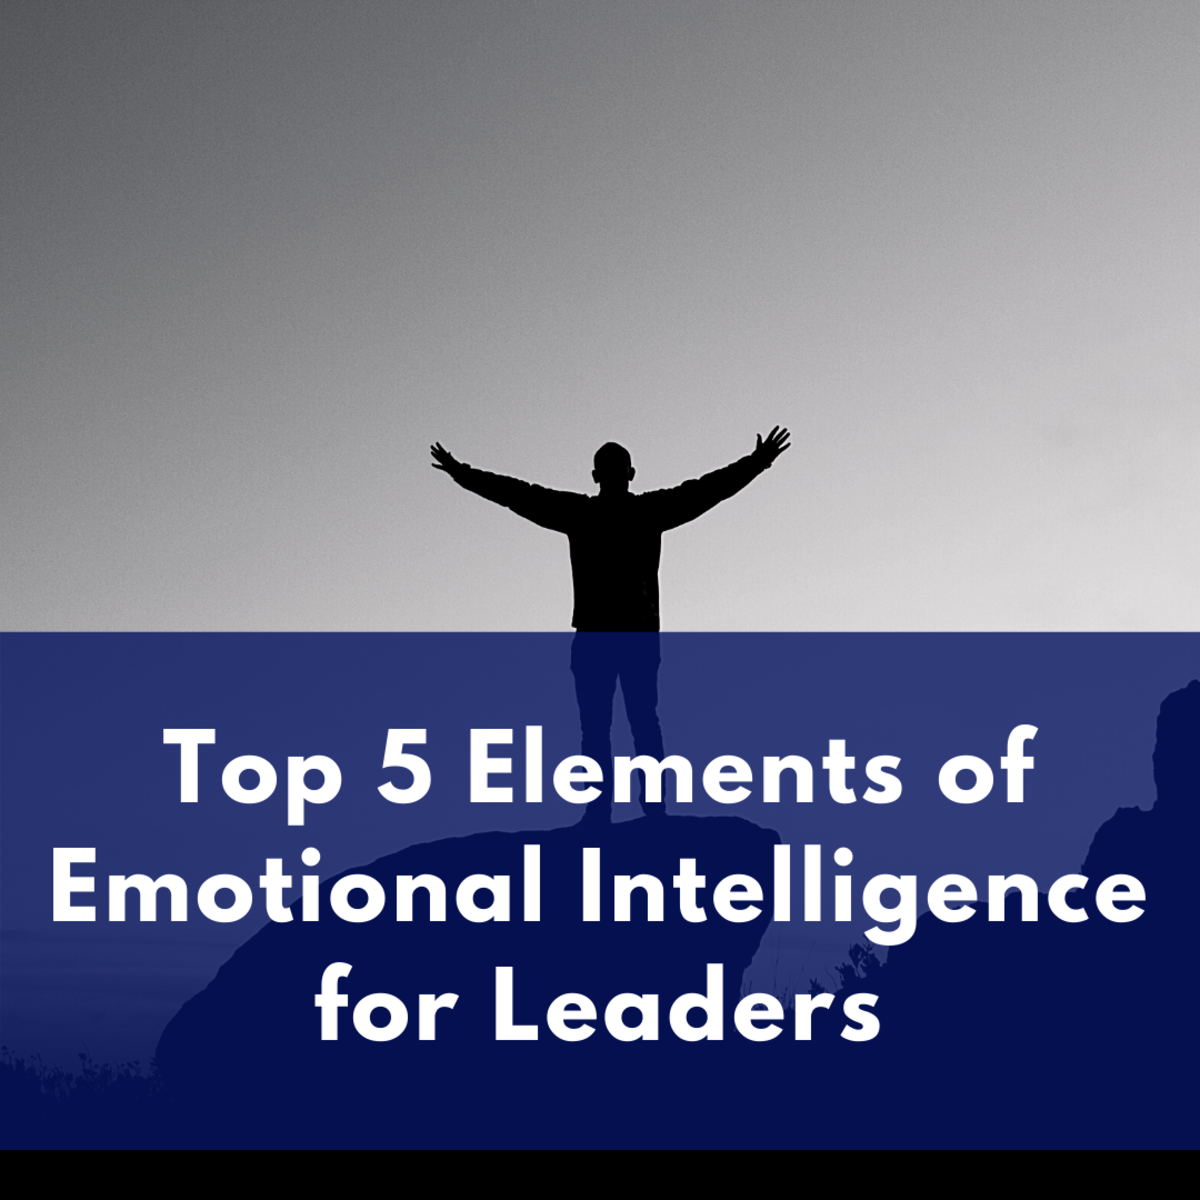 Elements of emotional intelligence for leaders